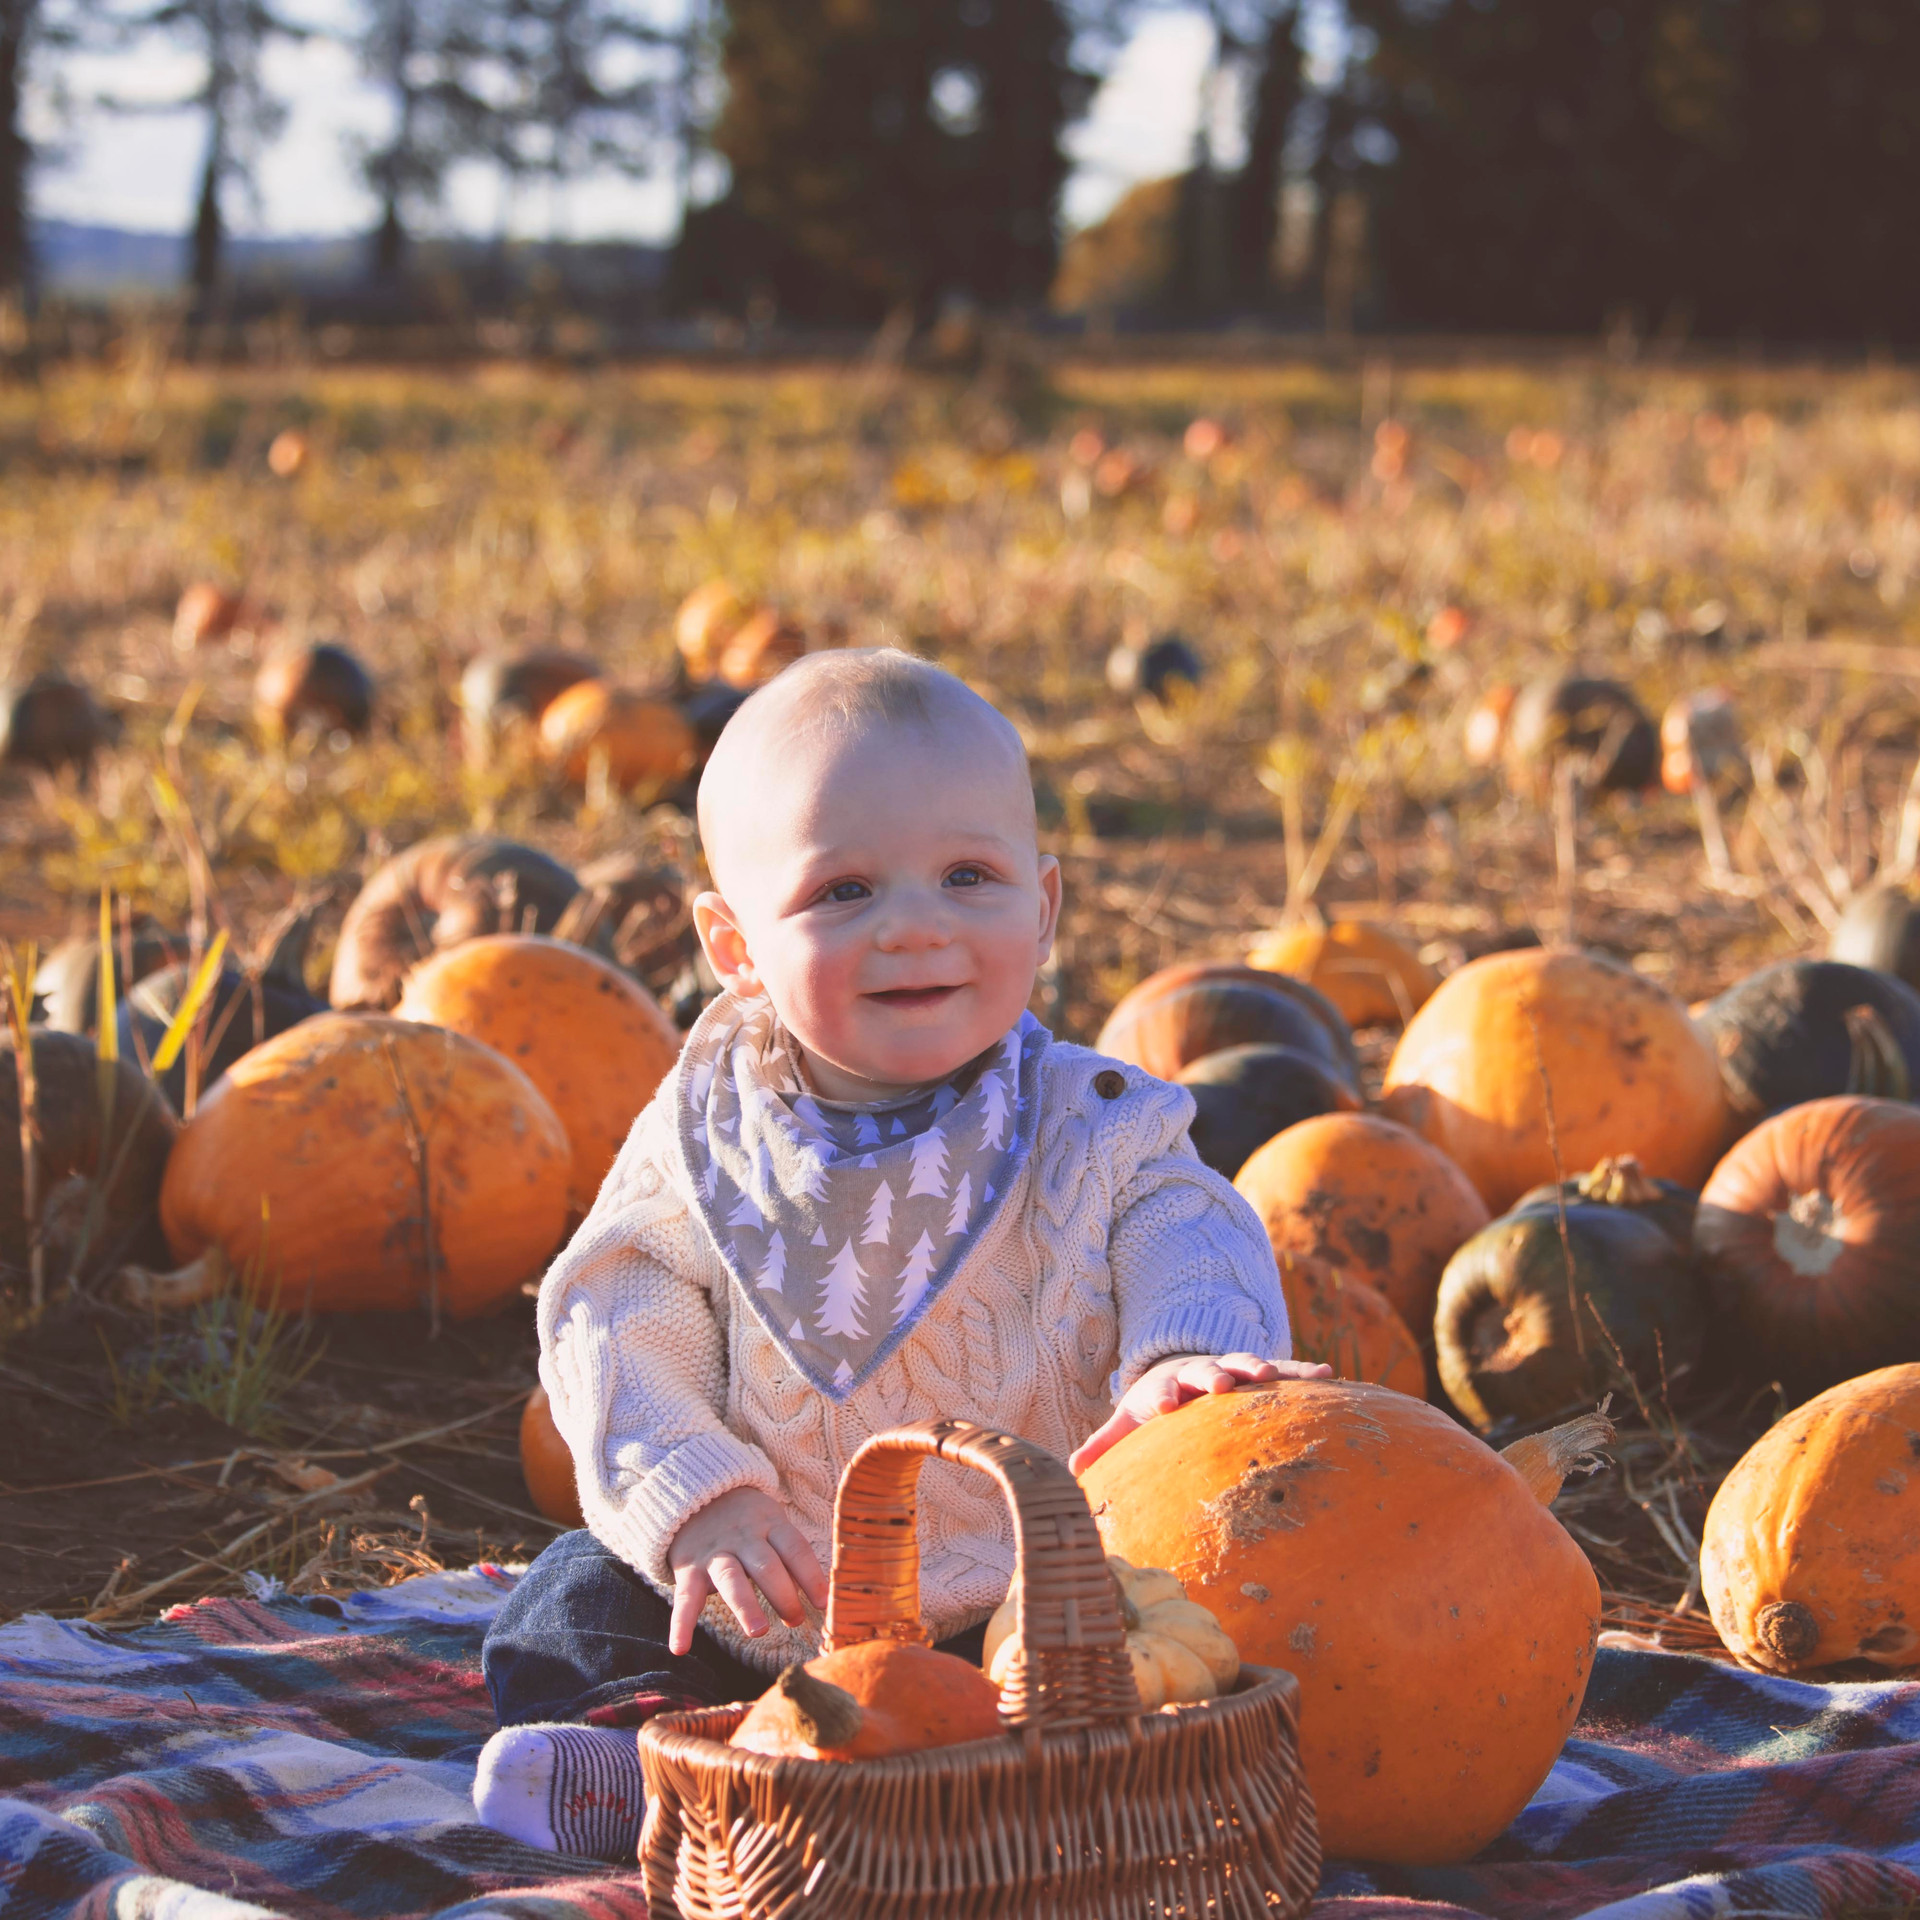 Family Photography at Golden Hour at the Pumpkin Fields